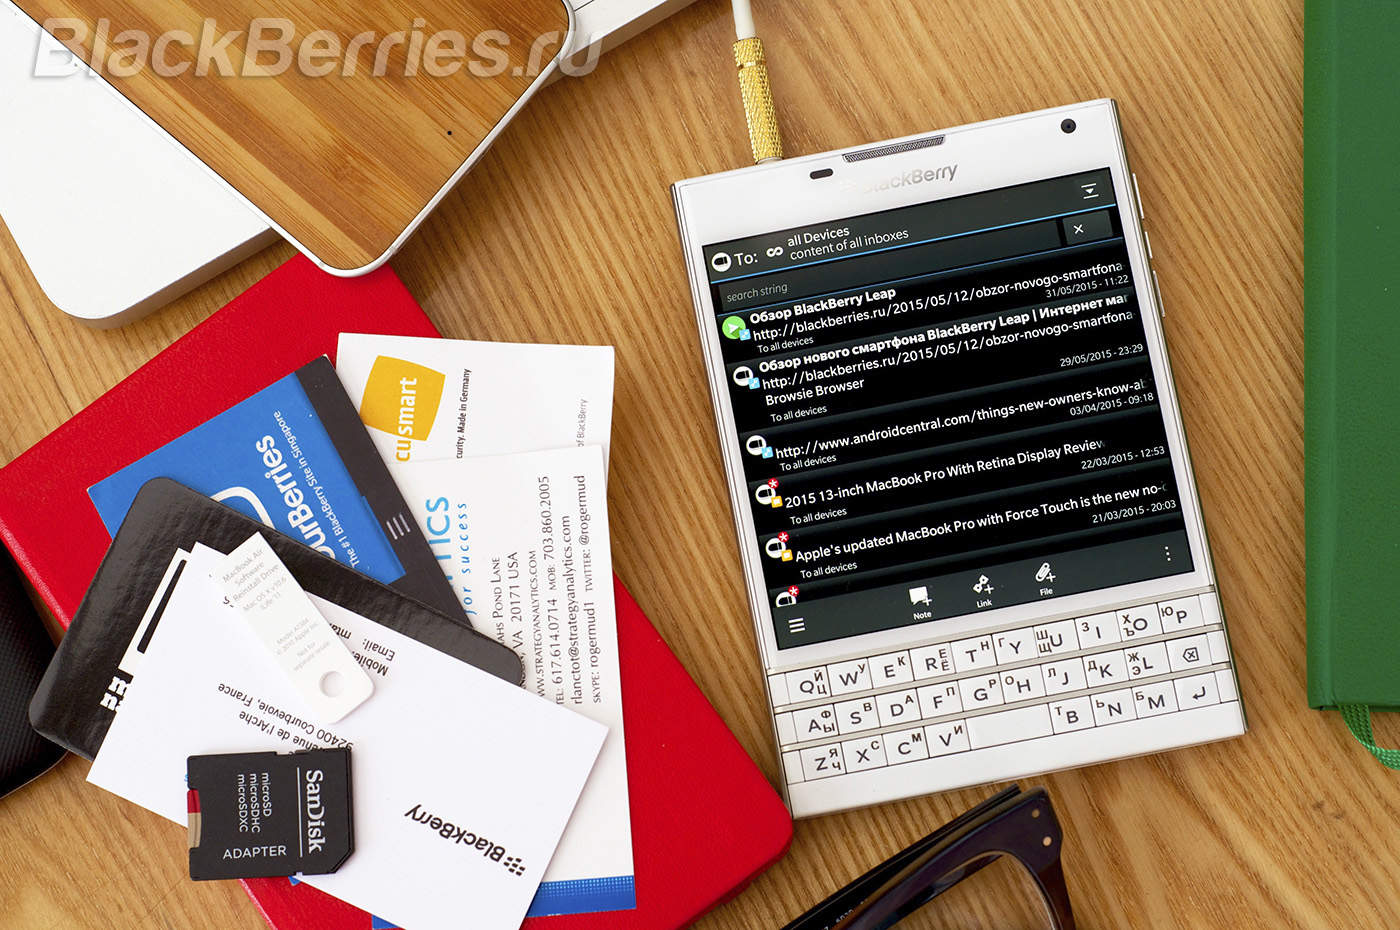 BlackBerry-Passport-31-05-13